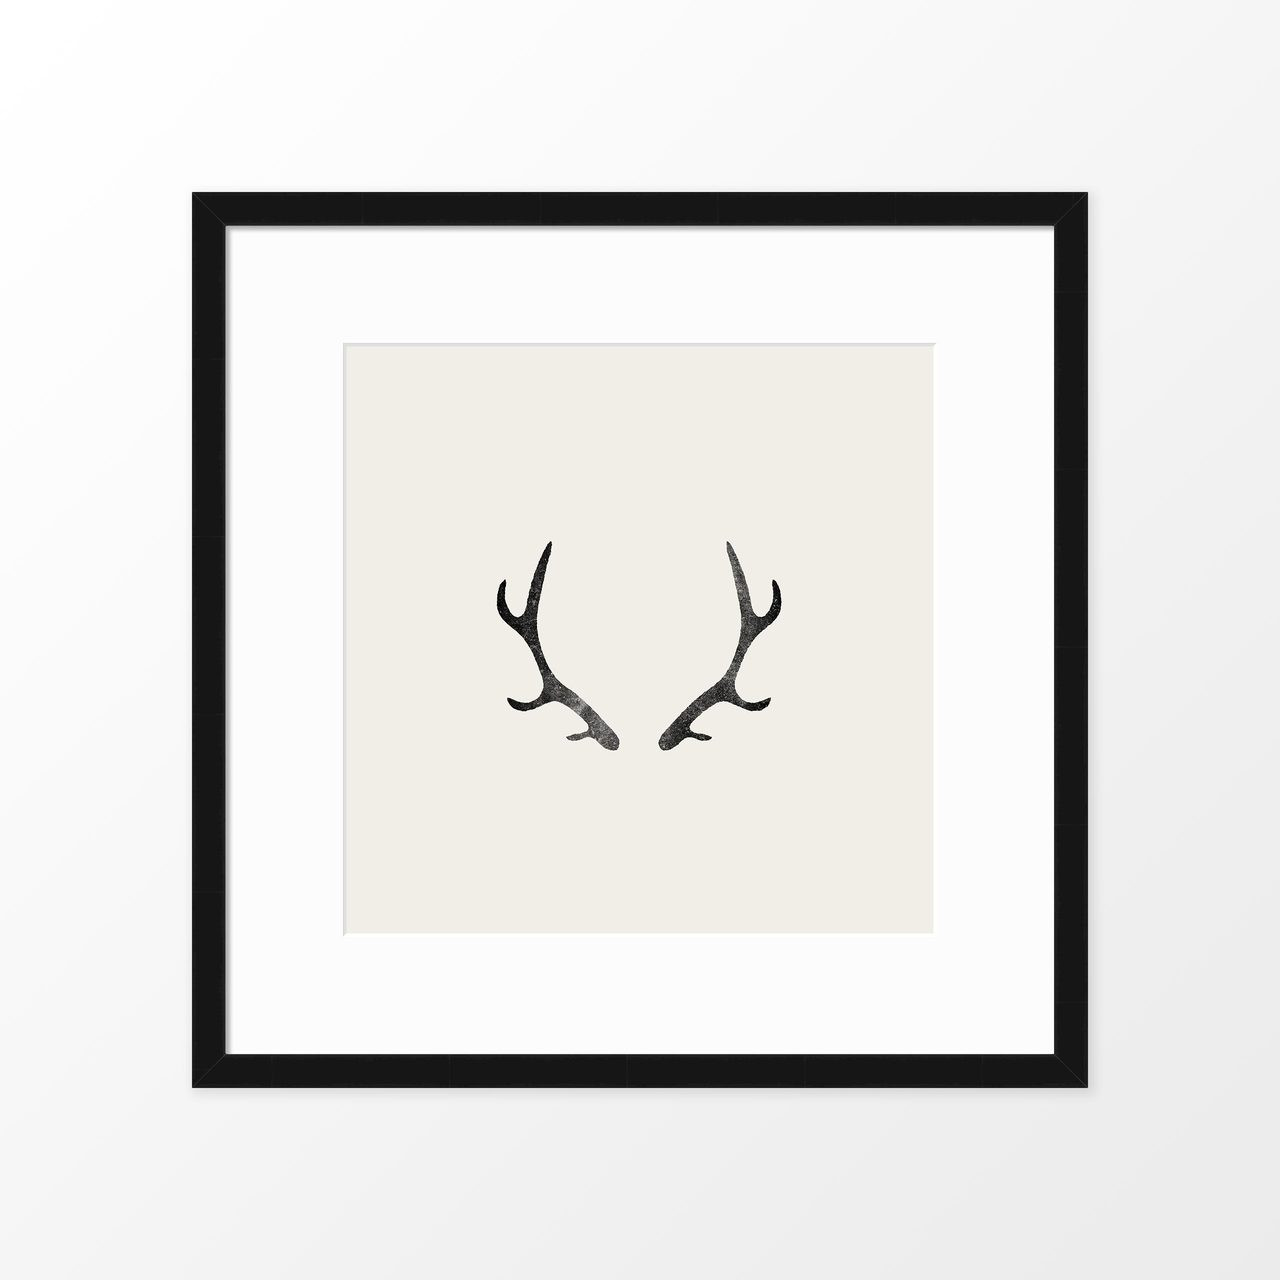 'Antlers' Block-printed Art Print from The Printed Home (Printable)